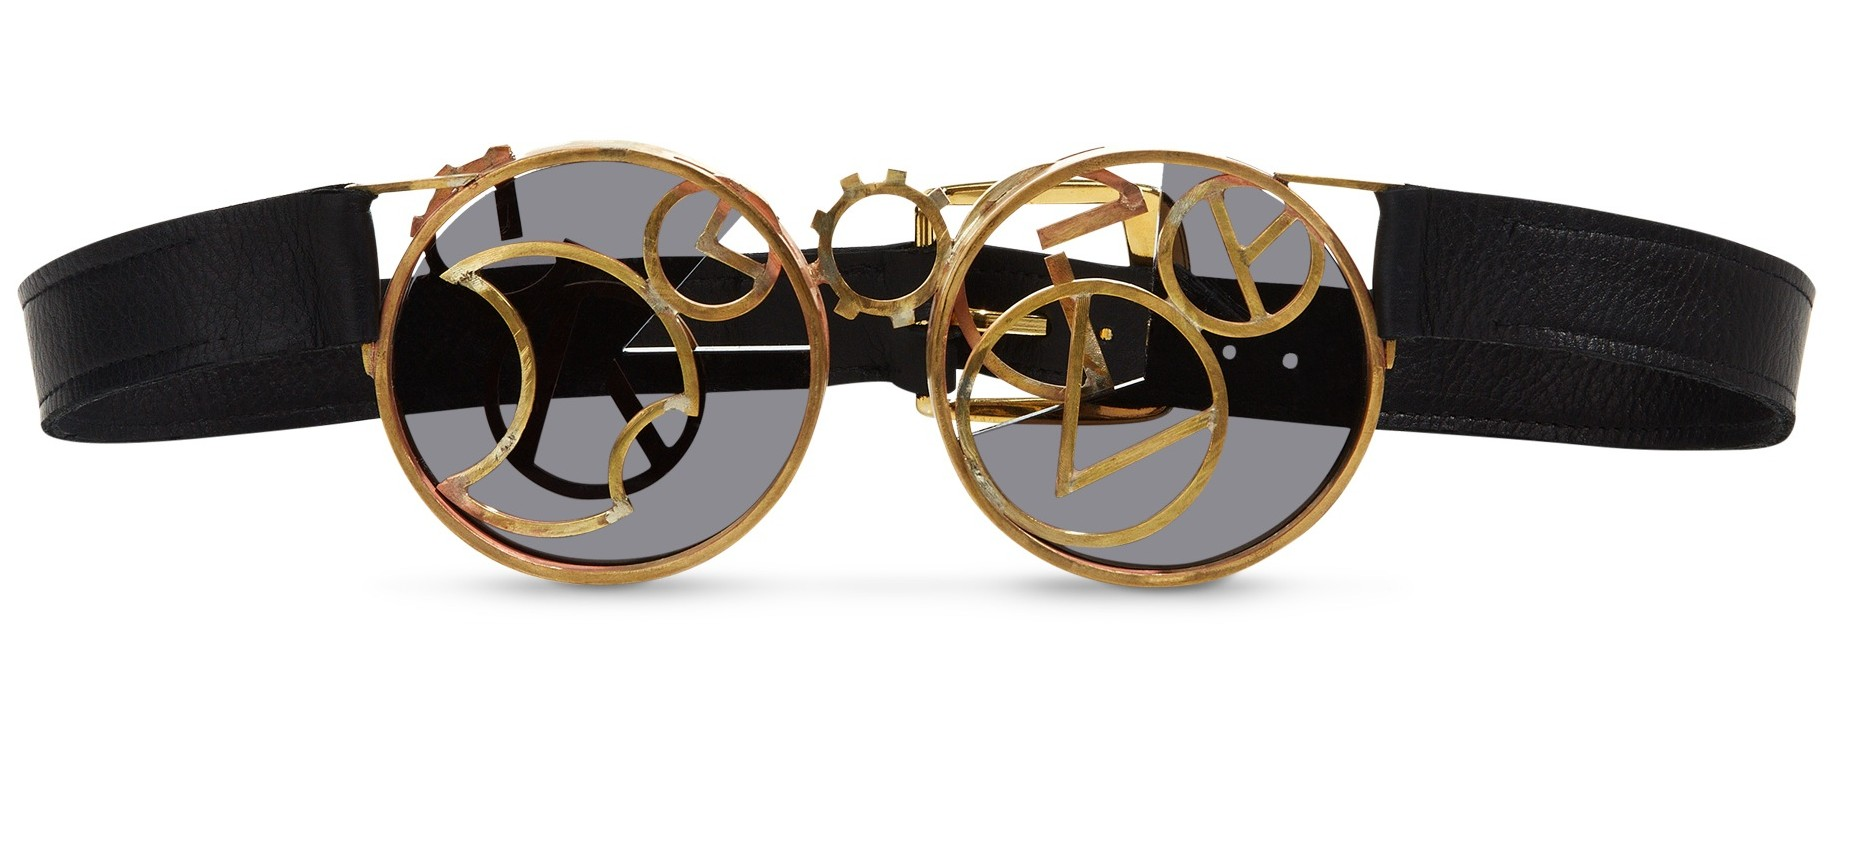 sunglasses design  Ying Ping Shen - Innovative Sunglasses Design Winner - Eyestylist